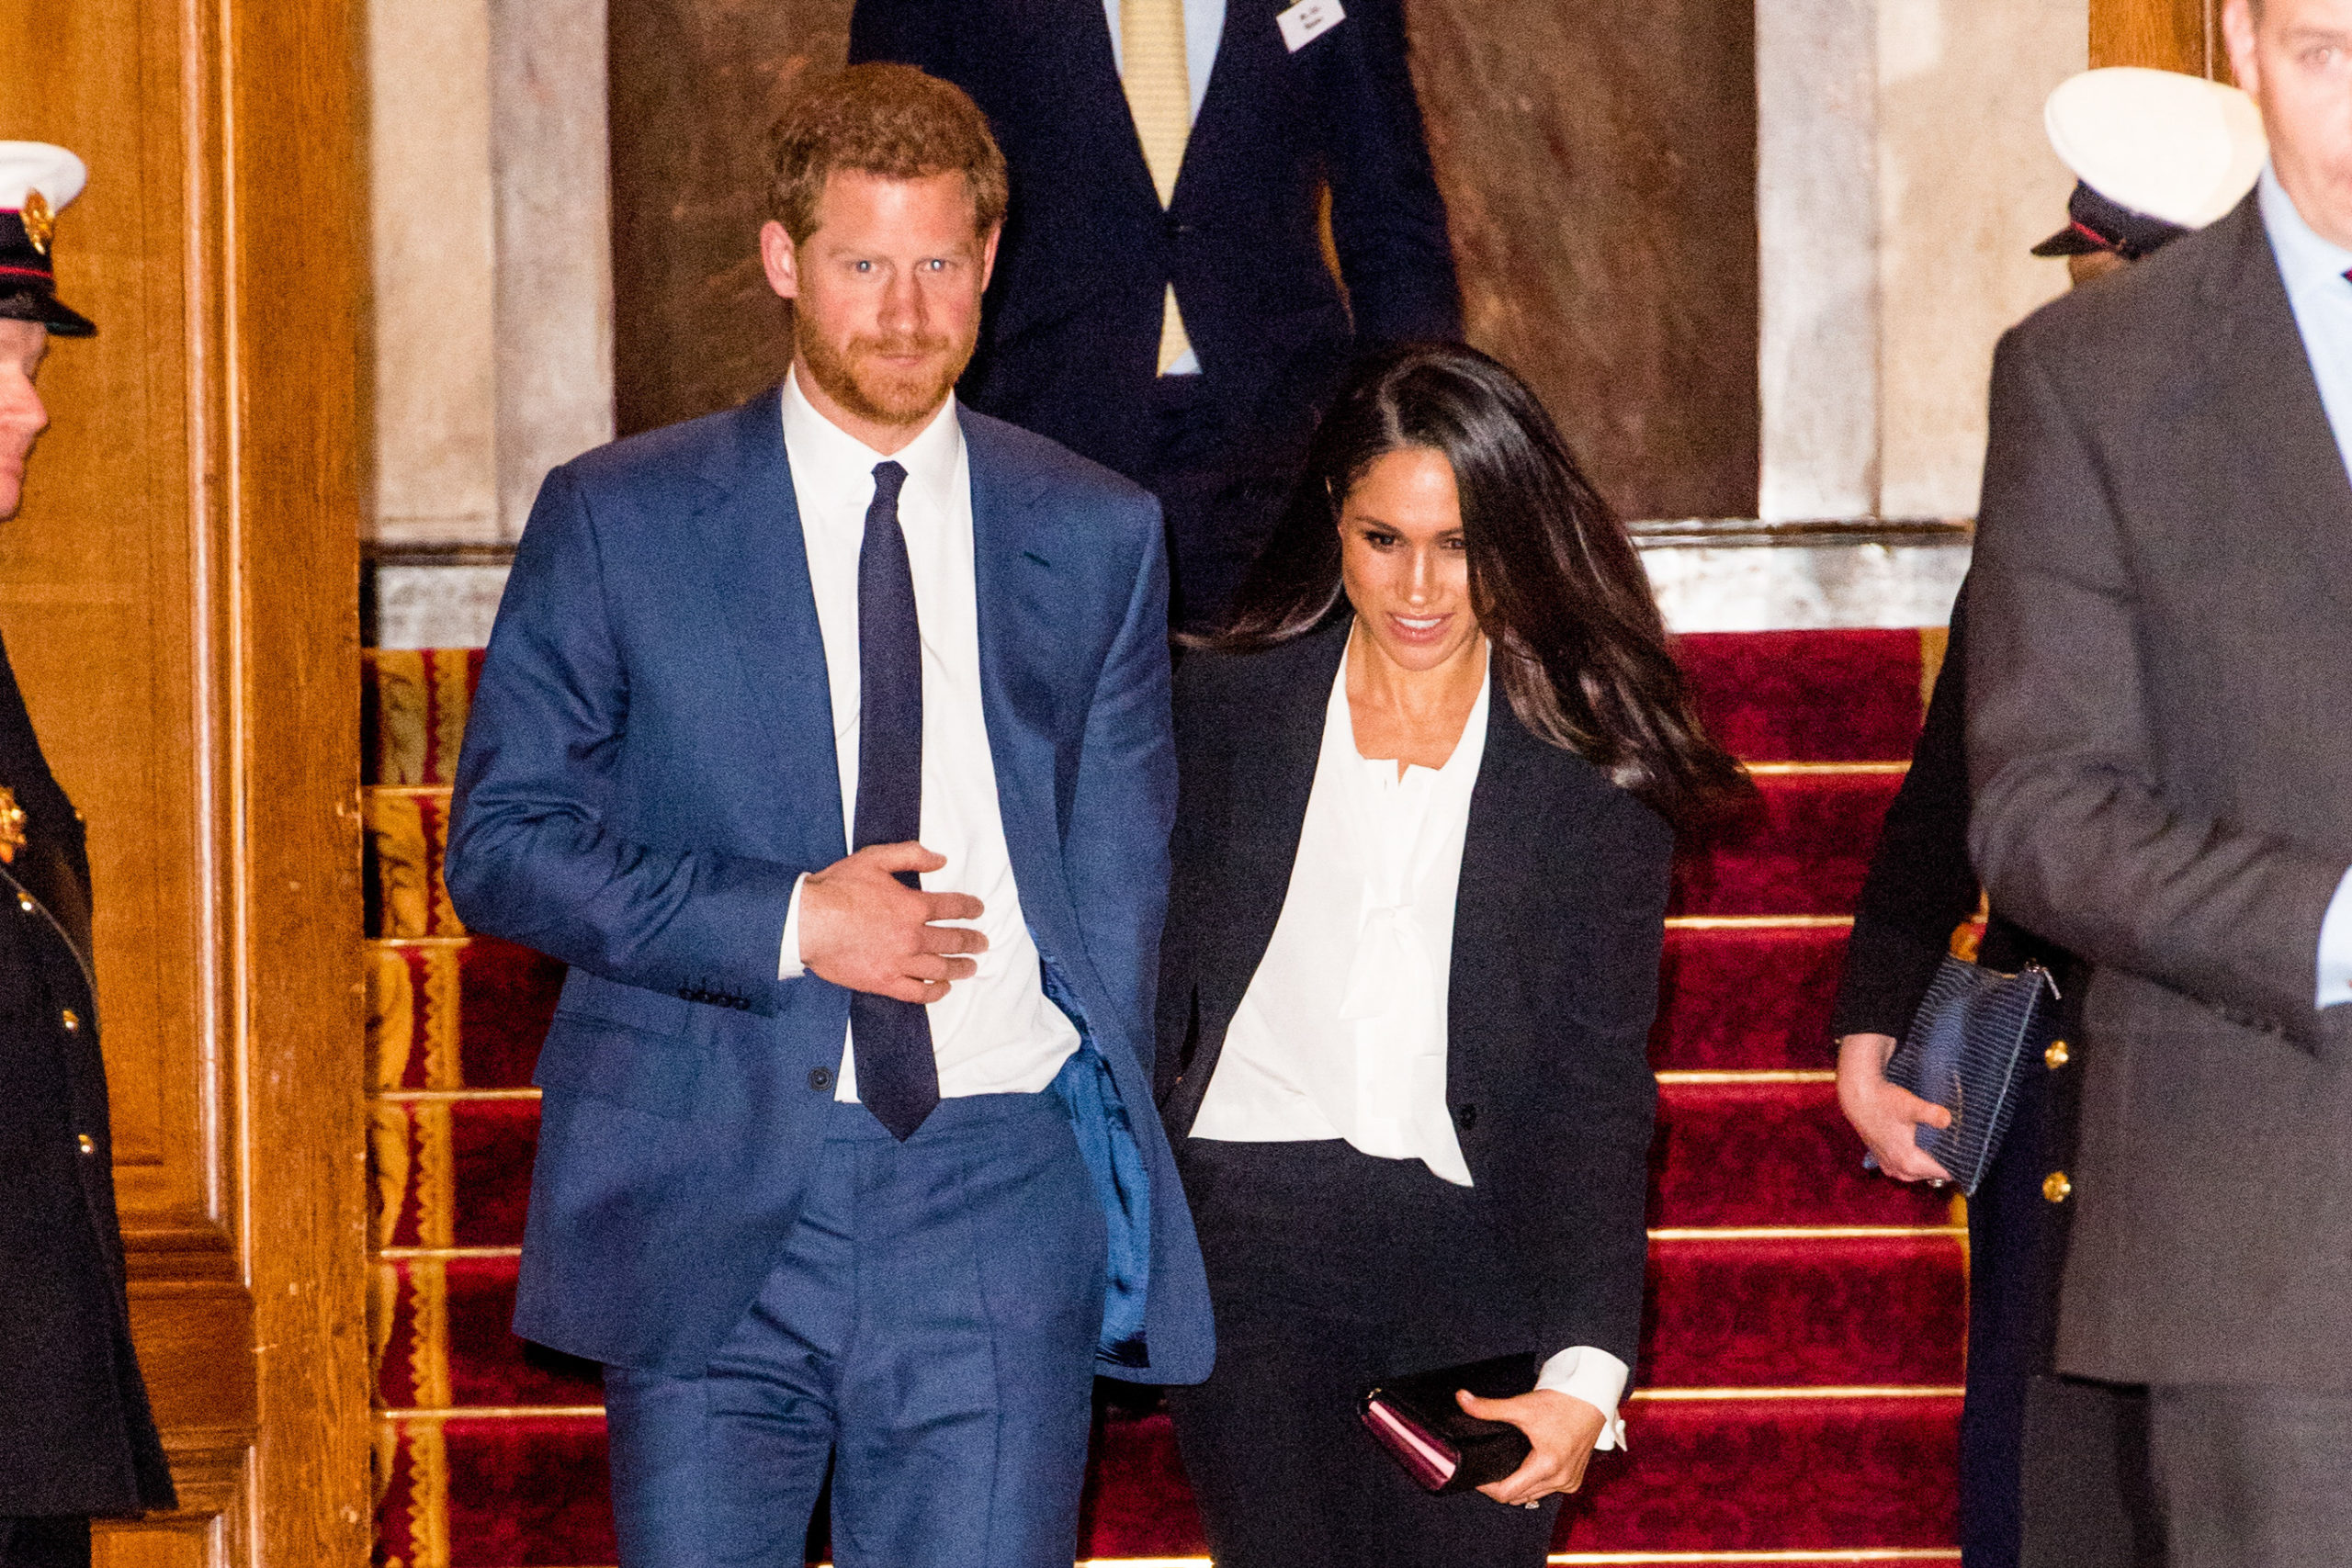 Prince Harry and Meghan stepped down from royal duties